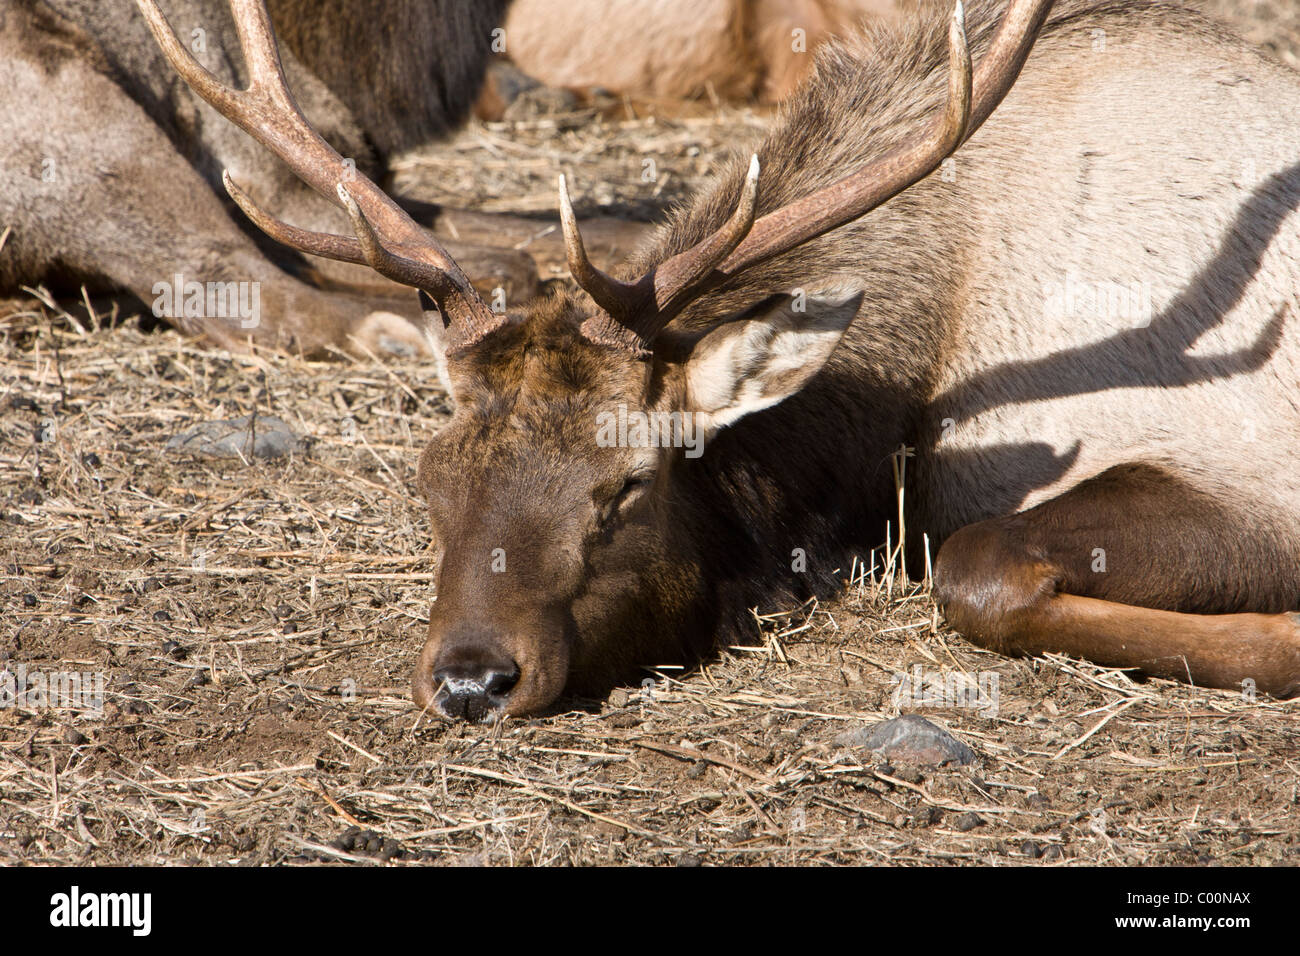 A Rocky Mountain Elk snoozes in the late morning sun at Oak Creek Wildlife Refuge near Naches, Washington. - Stock Image